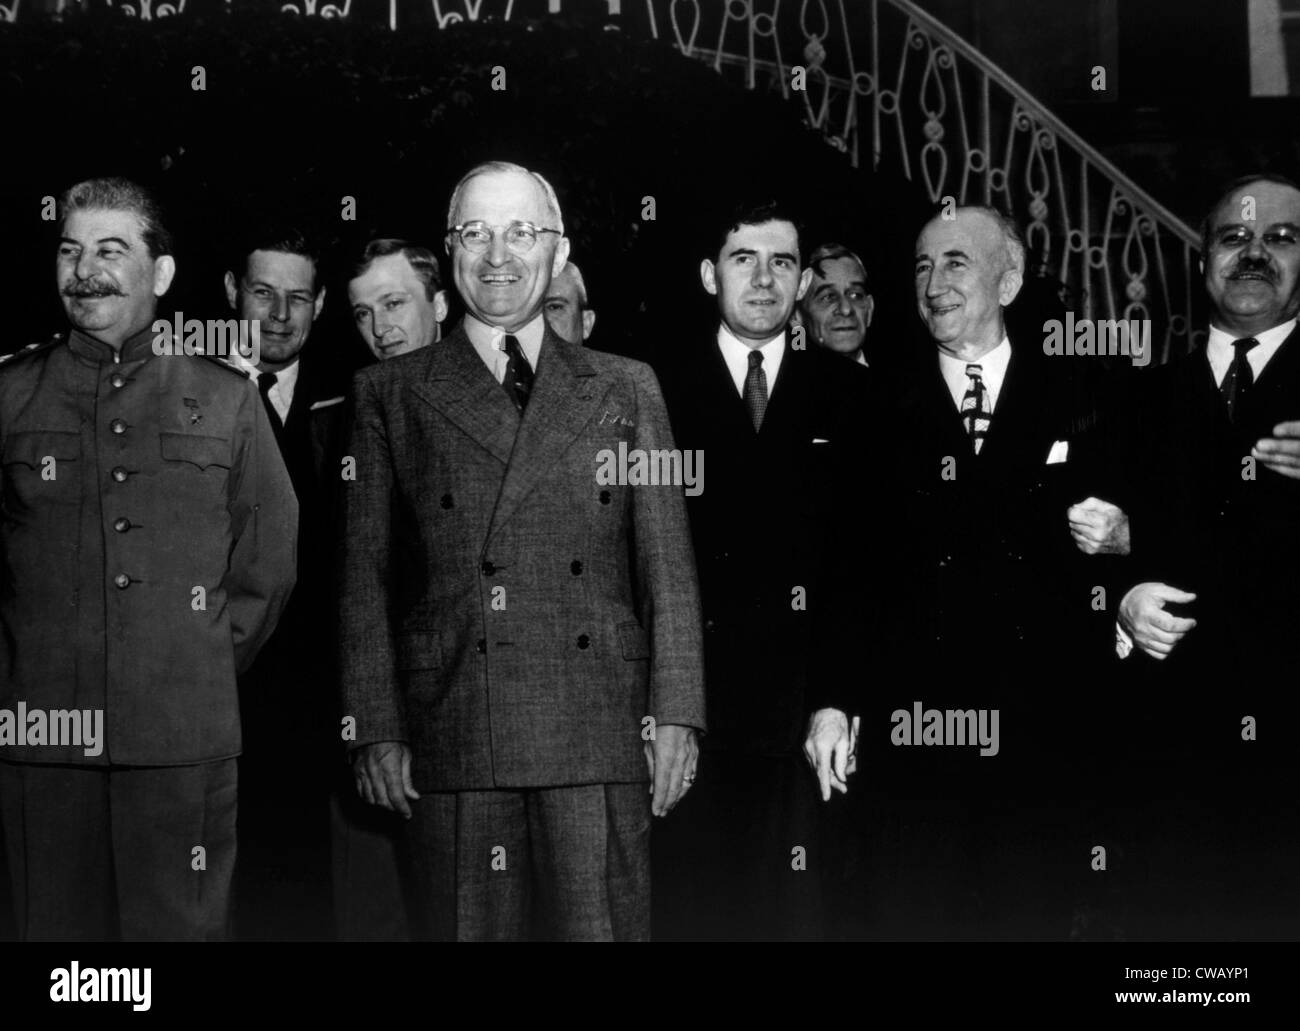 The Potsdam Conference, Josef Stalin, Harry S. Truman, James Byrnes, Vyacheslav Molotov, 1945. - Stock Image